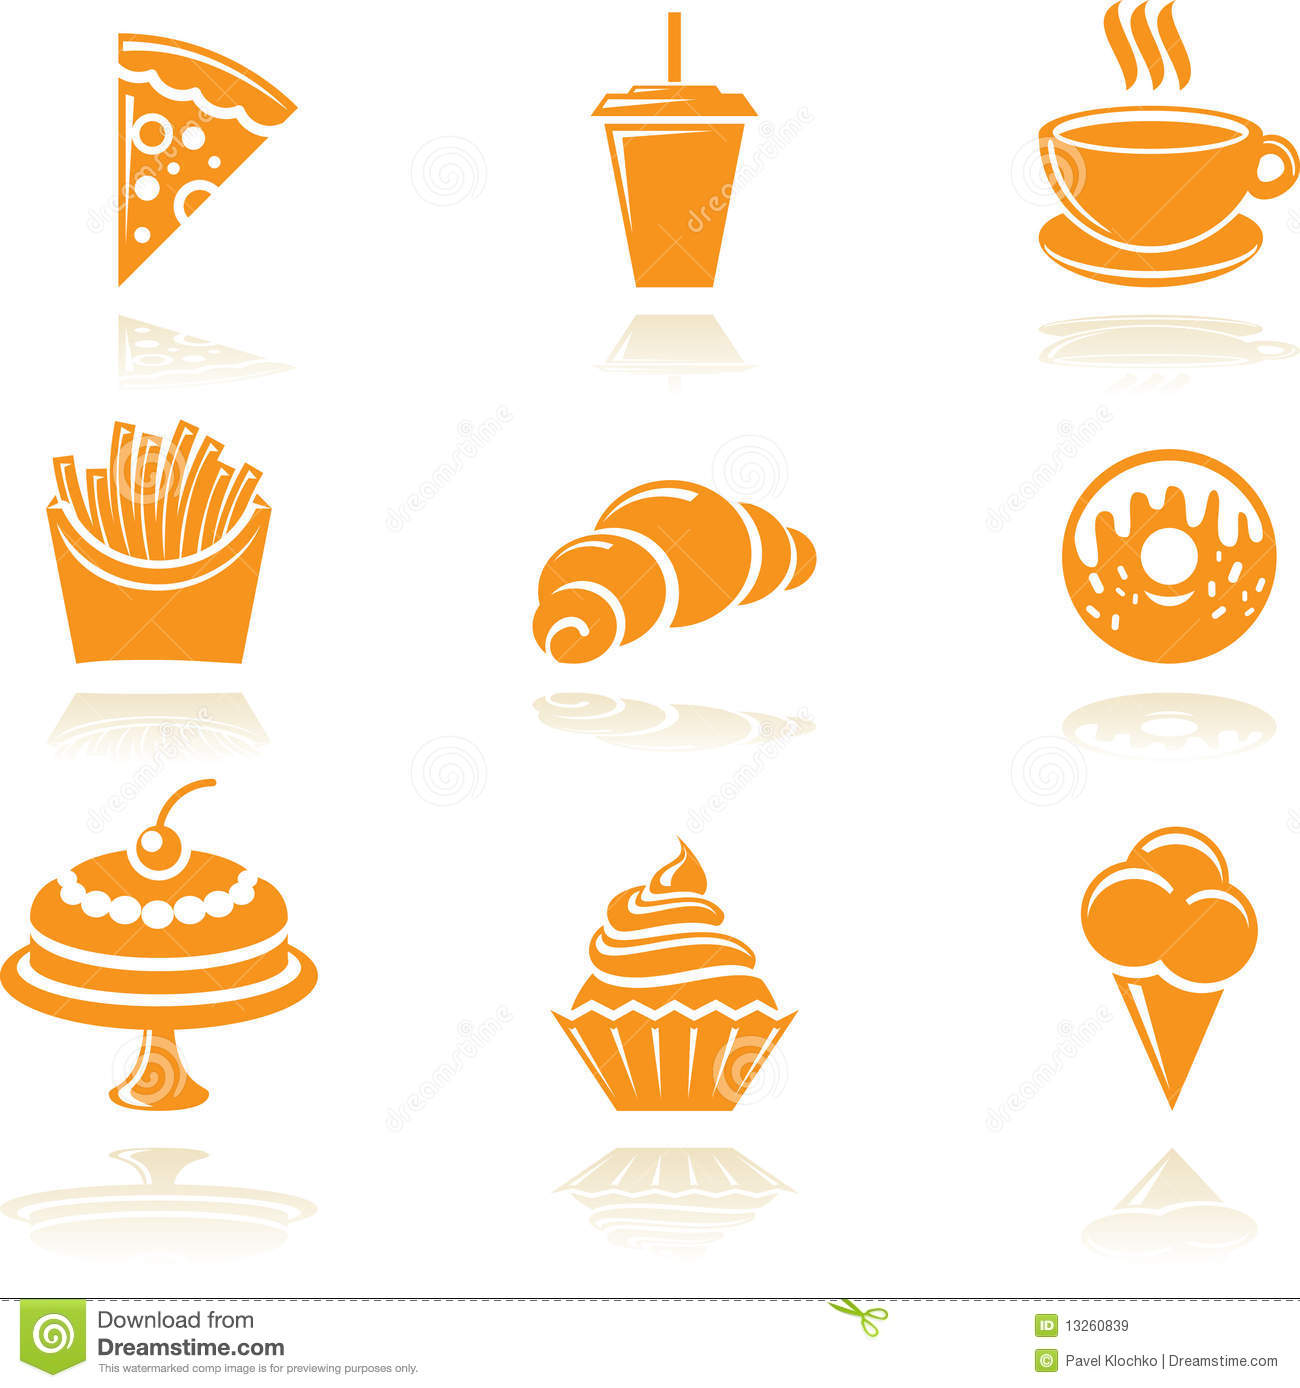 Royalty Free Food Icon